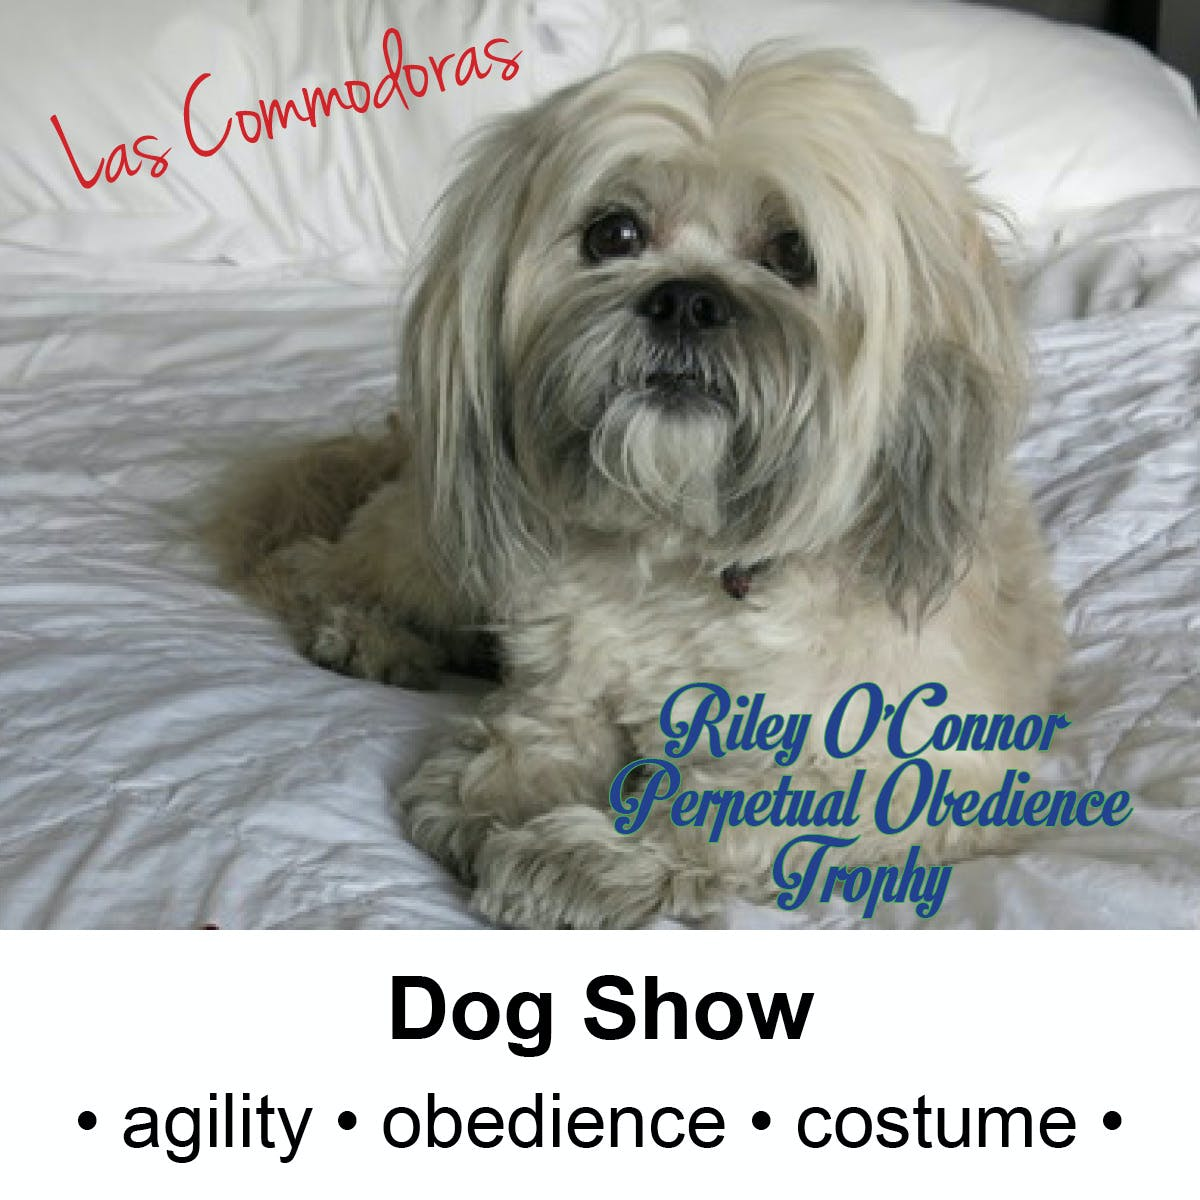 Las Commodoras Dog Show